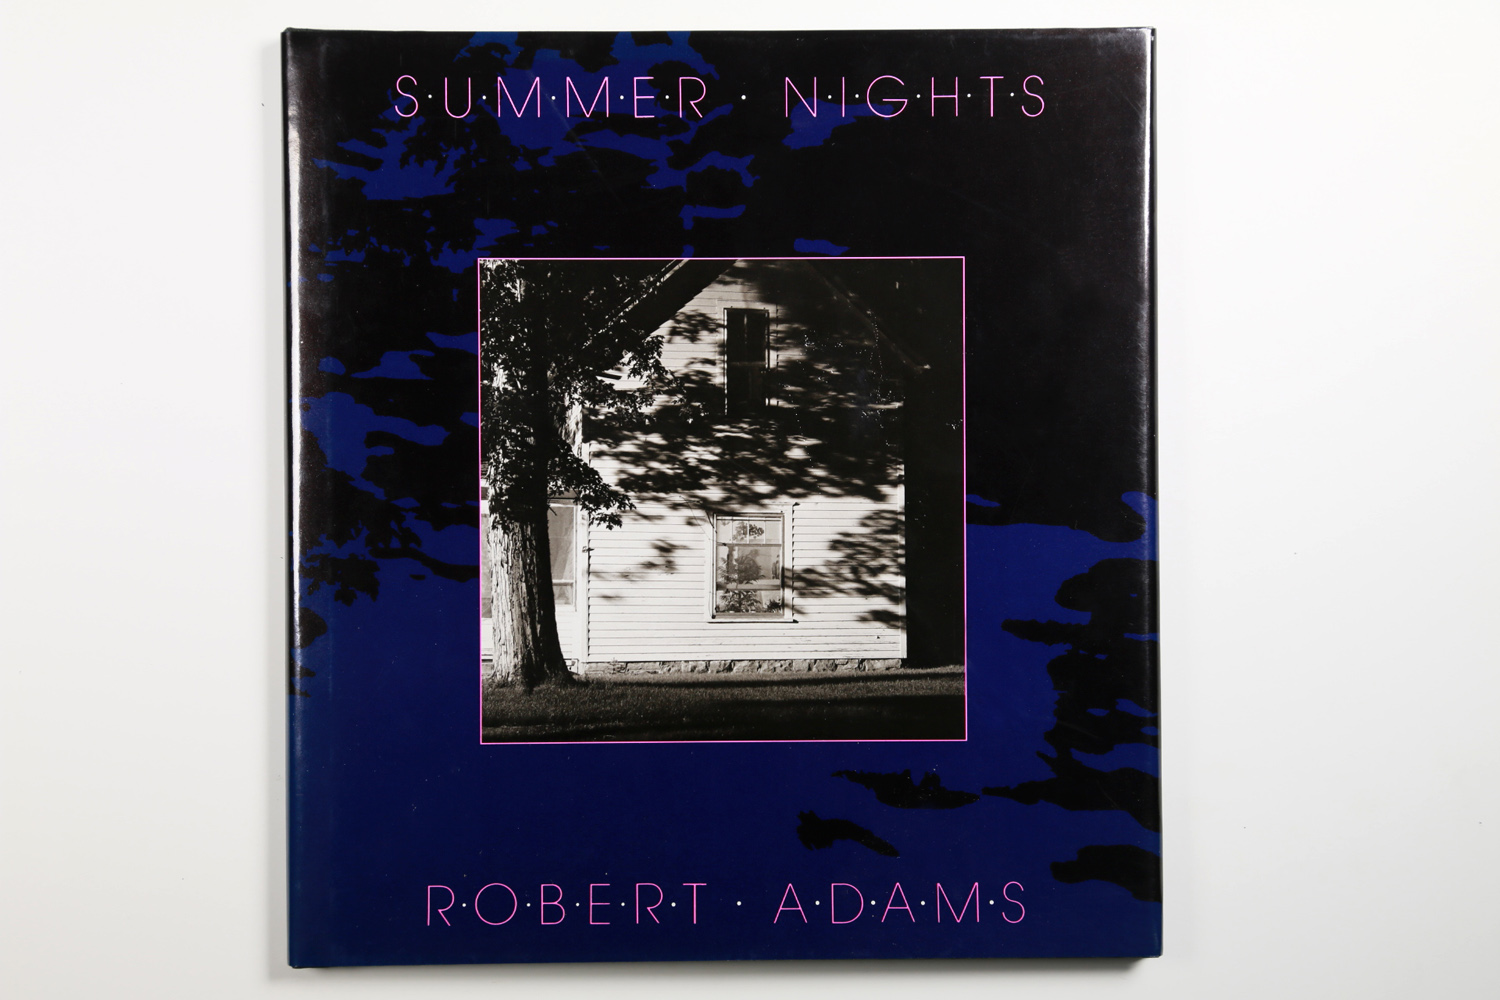 Robert Adams's Summer Nights, 1985                               An expansive collection of nightscapes taken close to Adams's home in Colorado between 1976 and 1982.